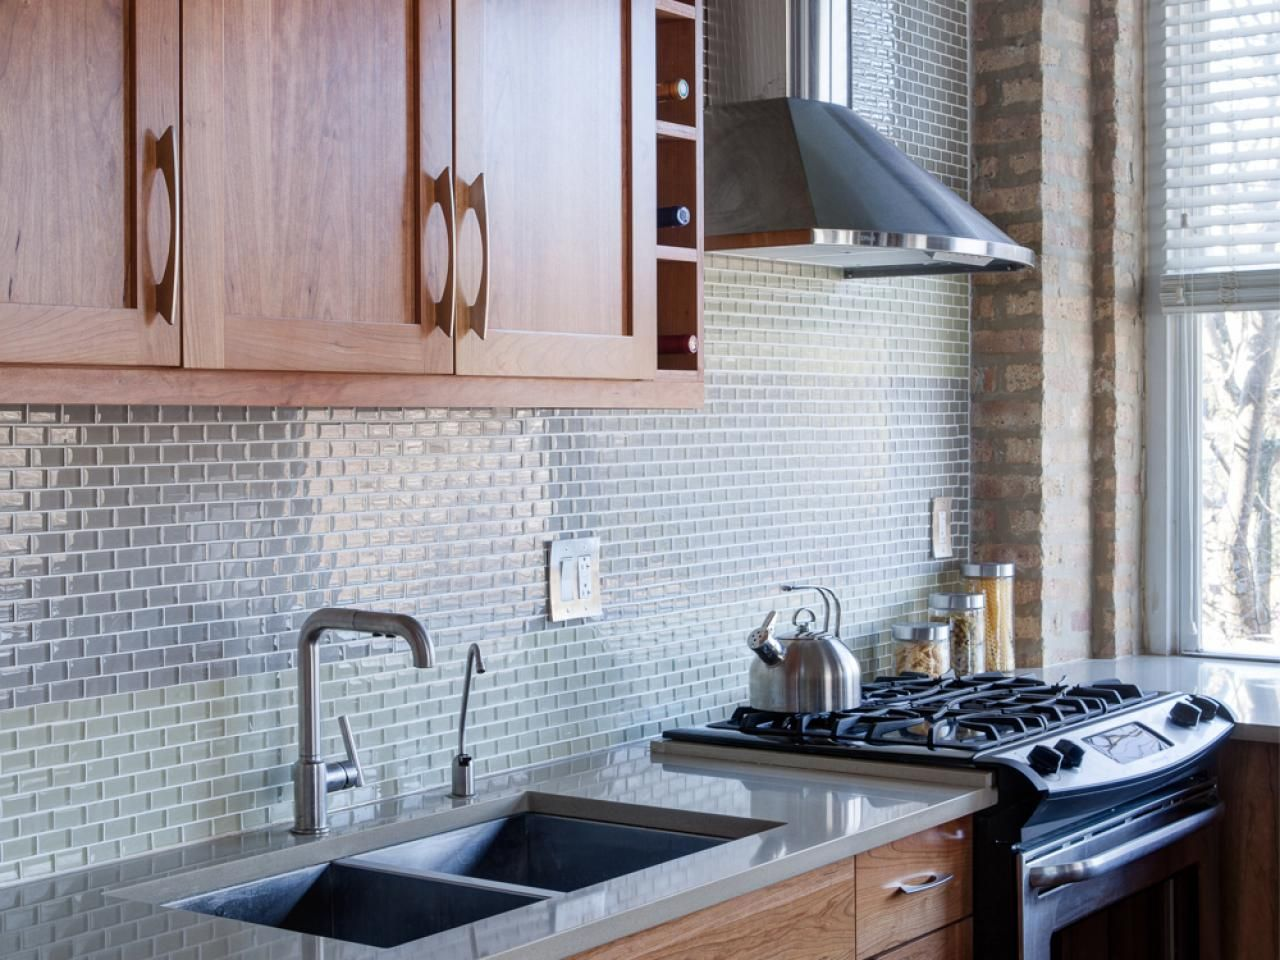 Hgtv Kitchen Backsplash Wrought Iron Chairs Pictures Of Ideas From Counter Top Design With Cabinets Islands Backsplashes